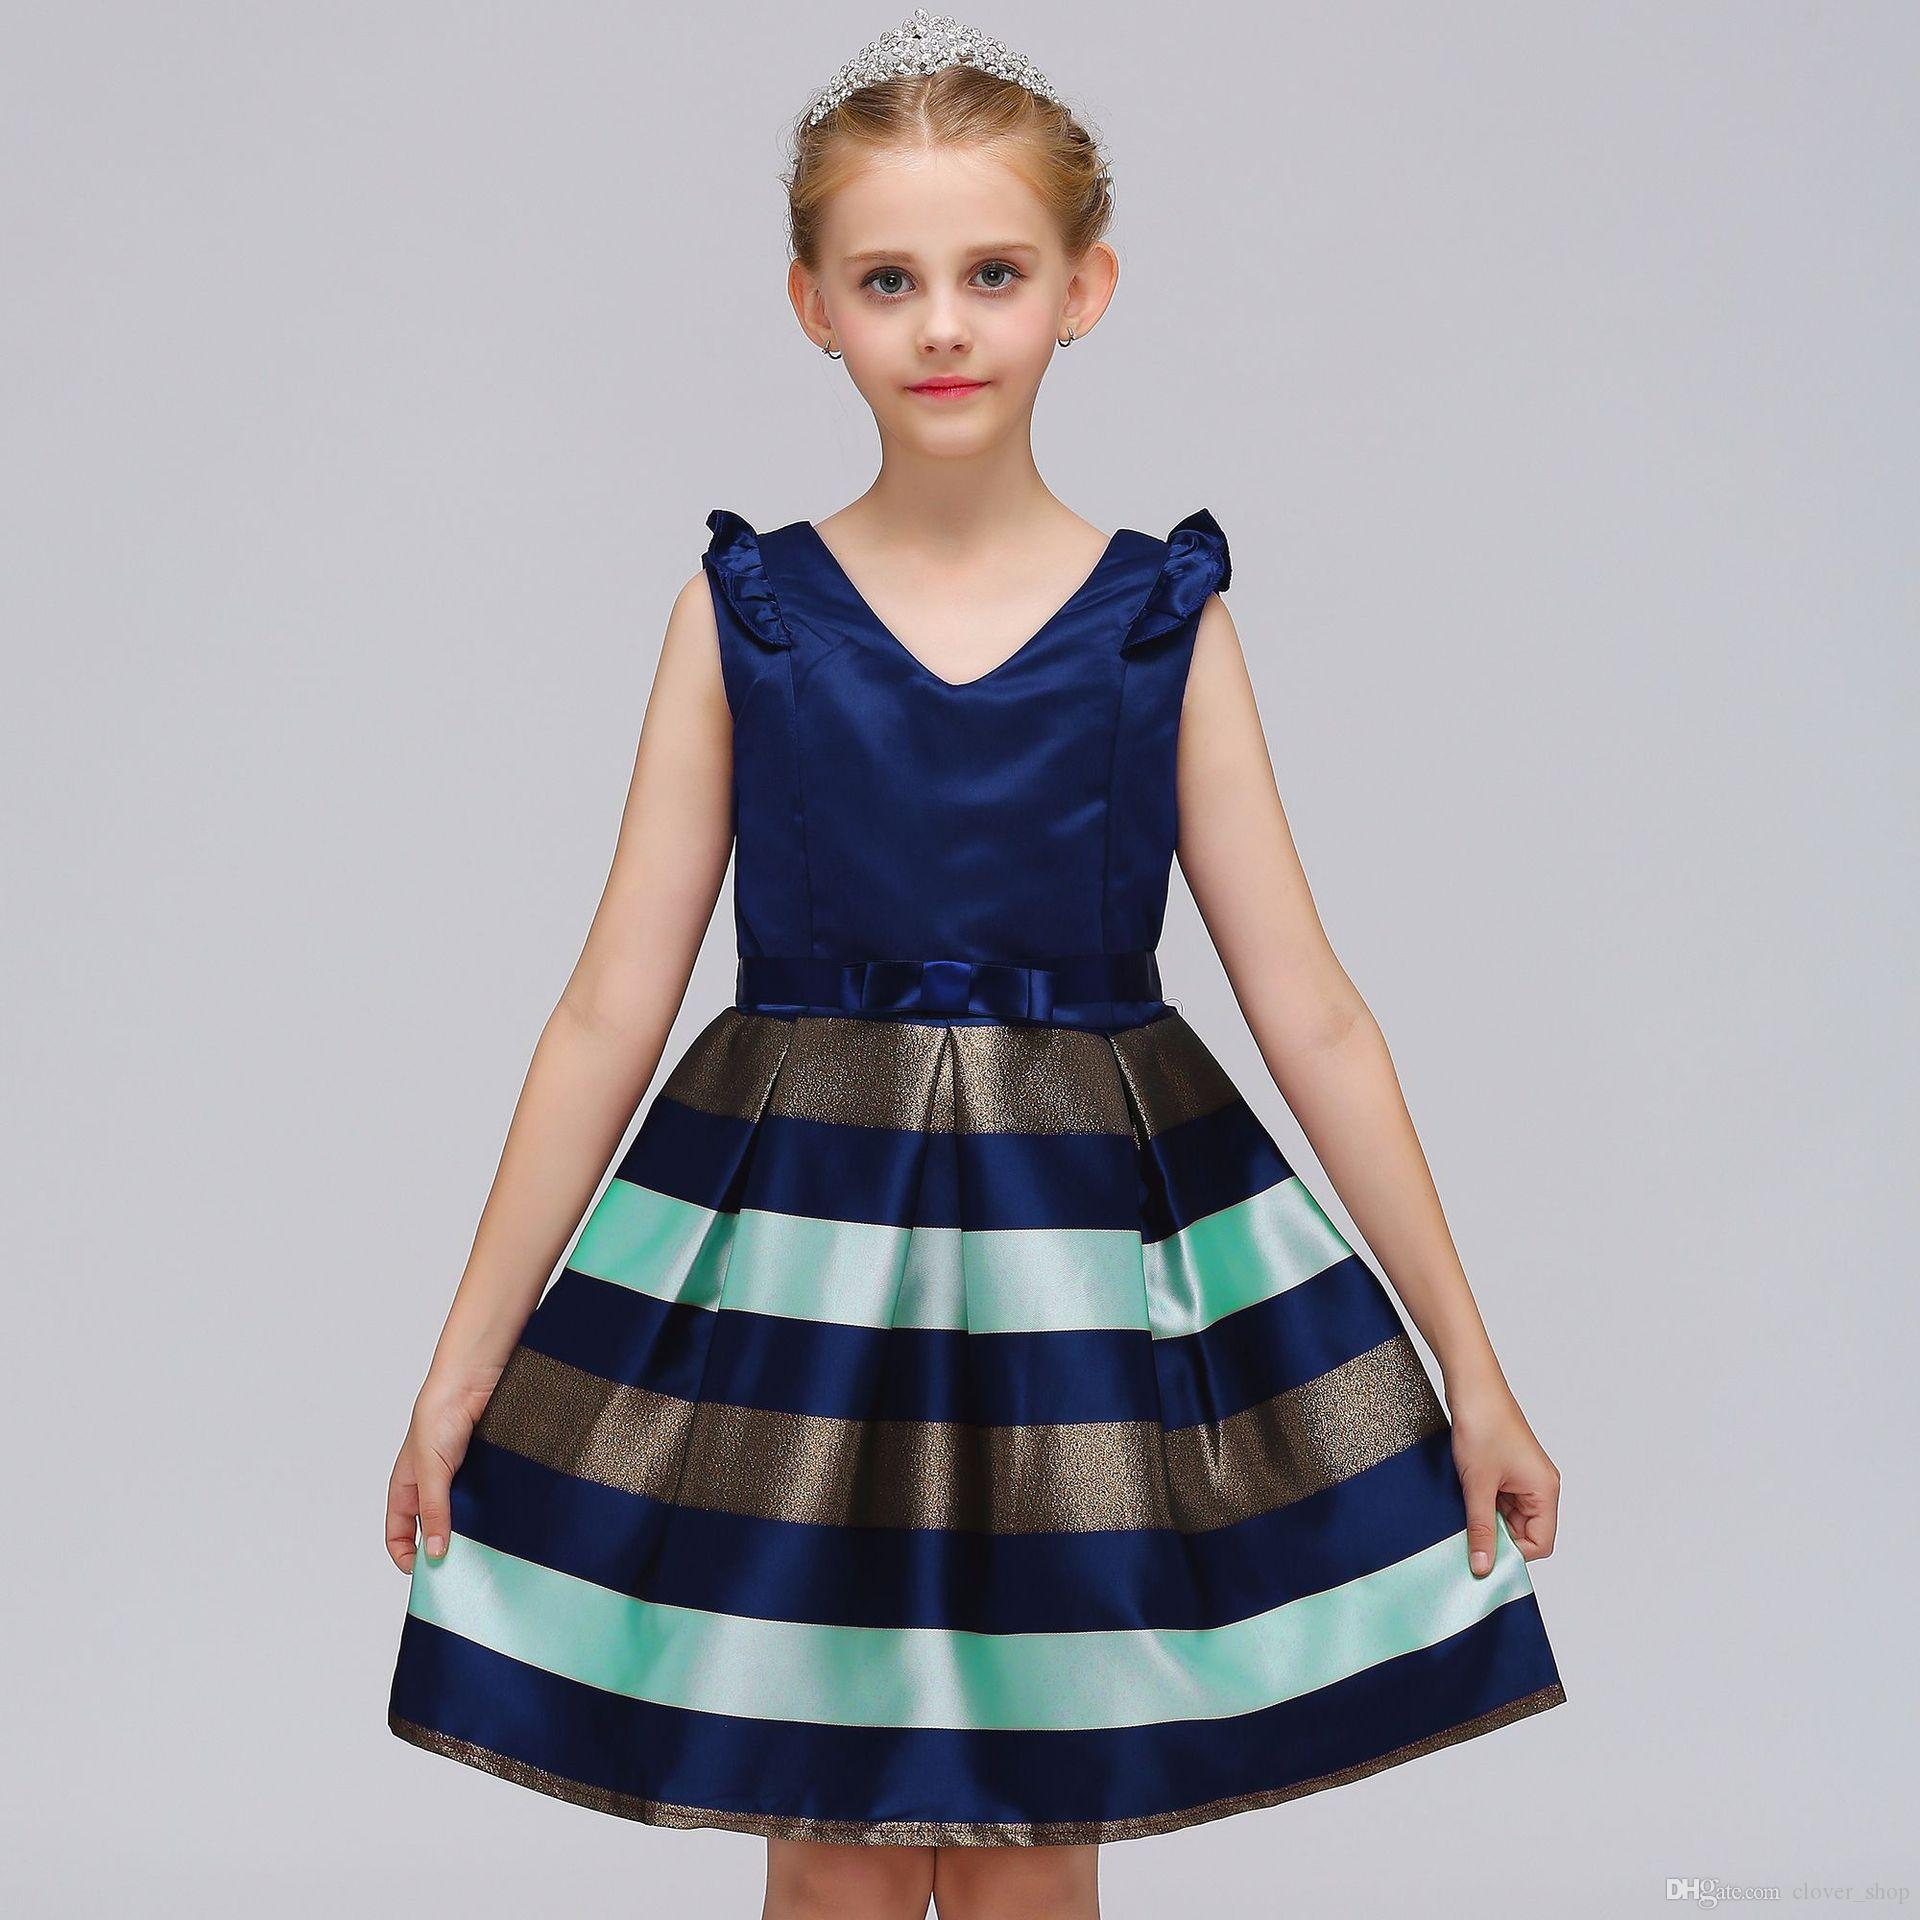 Sweety Girls Infant Toddler Kids Clothes Stripe Bow Princess Outfits Dress Gift